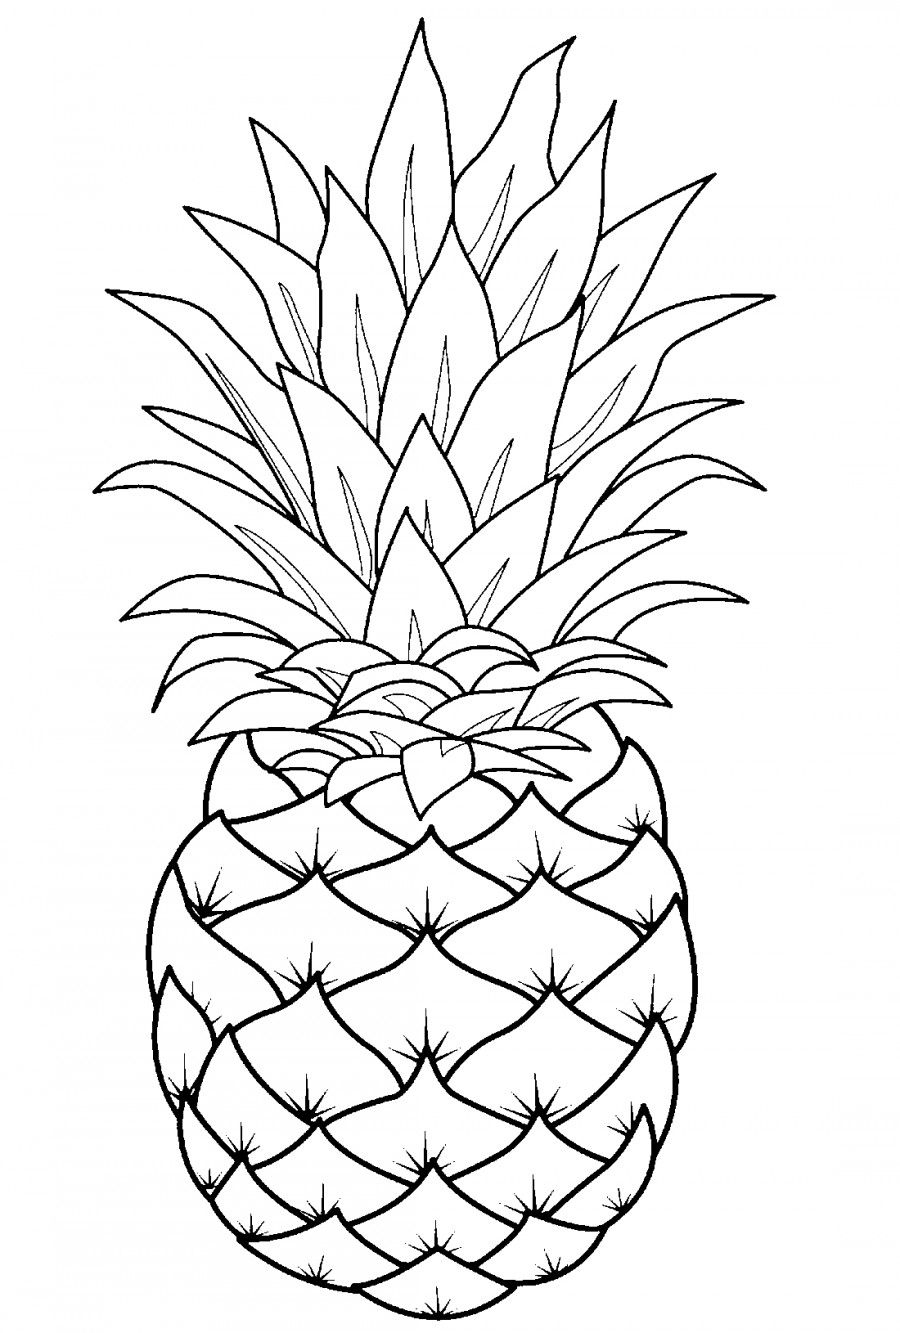 Pineapple Template | Line Art Drawings, Fruit Coloring Pages